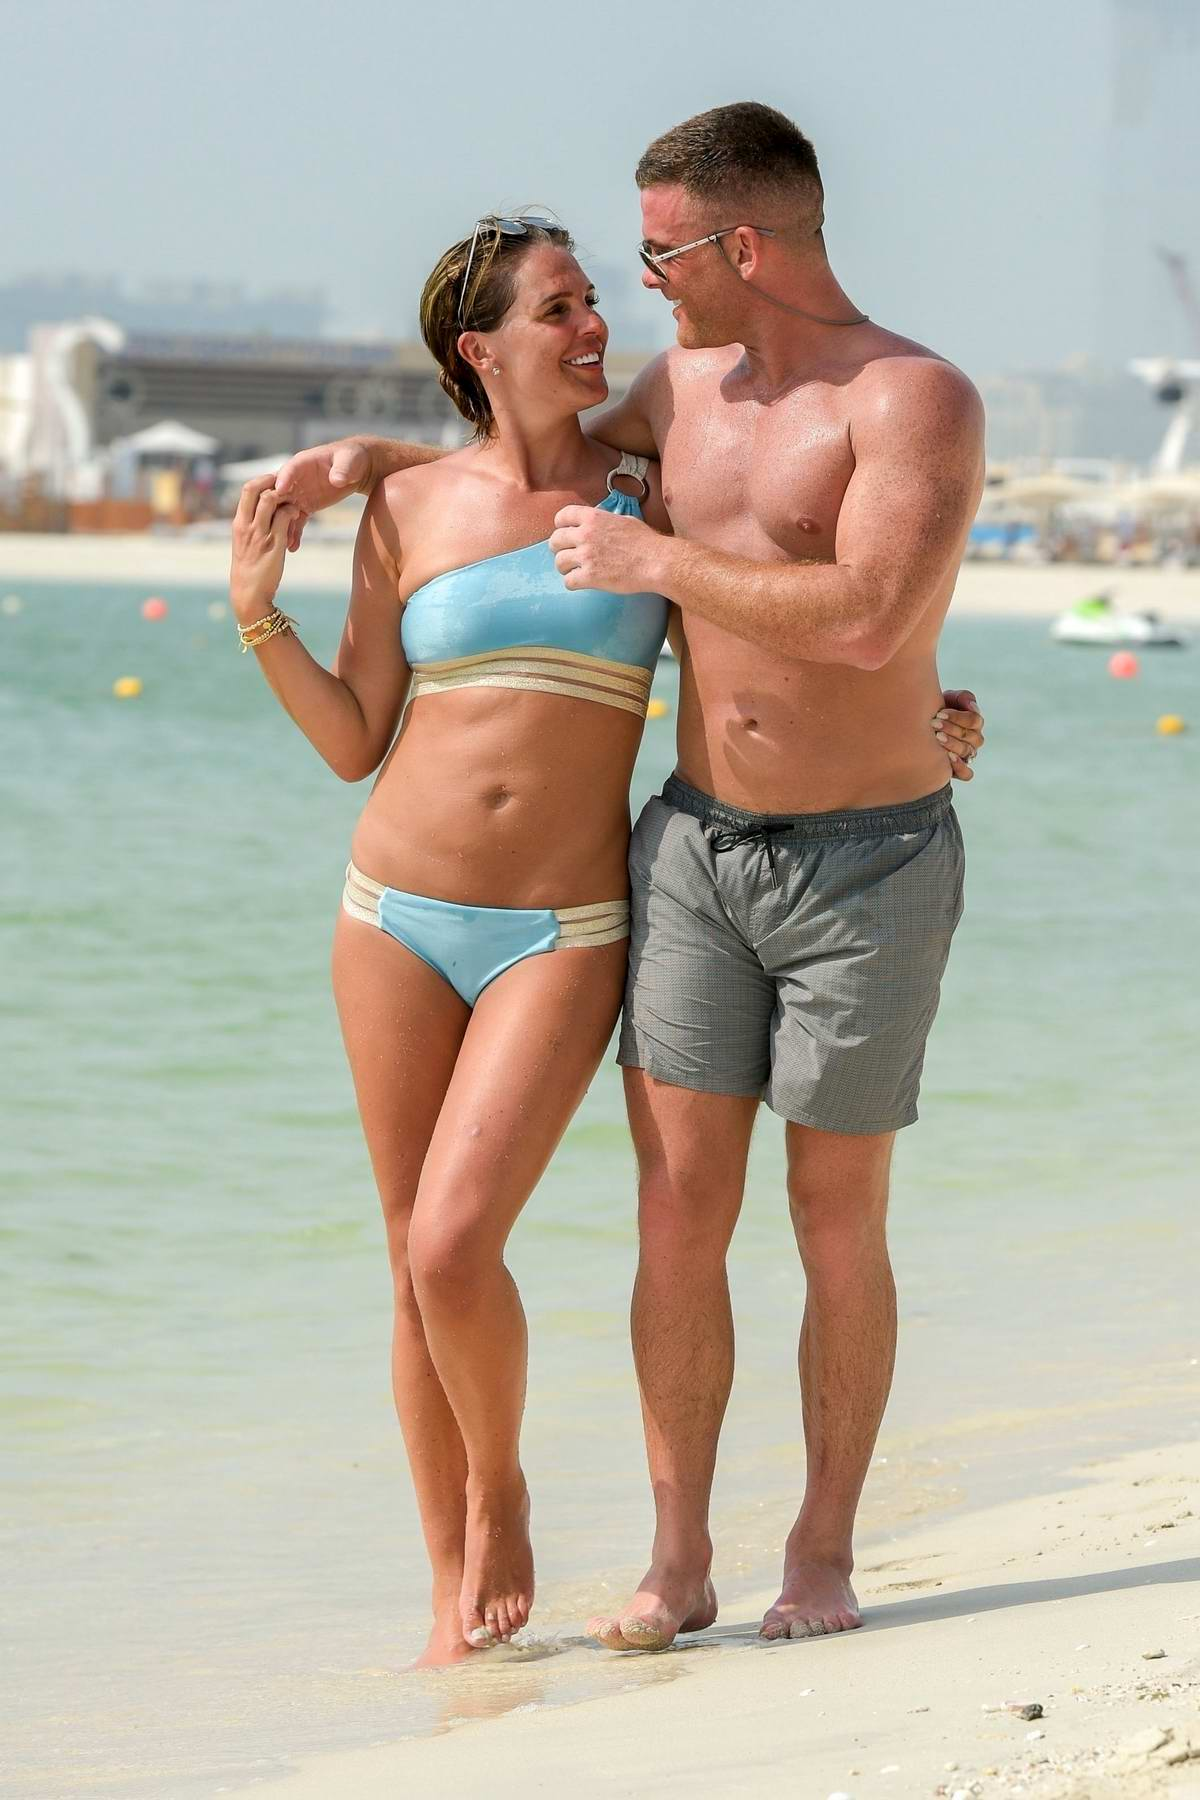 Danielle Lloyd spotted in a turquoise bikini while at the beach with fiance Micahel O'Neil during their holiday in Dubai